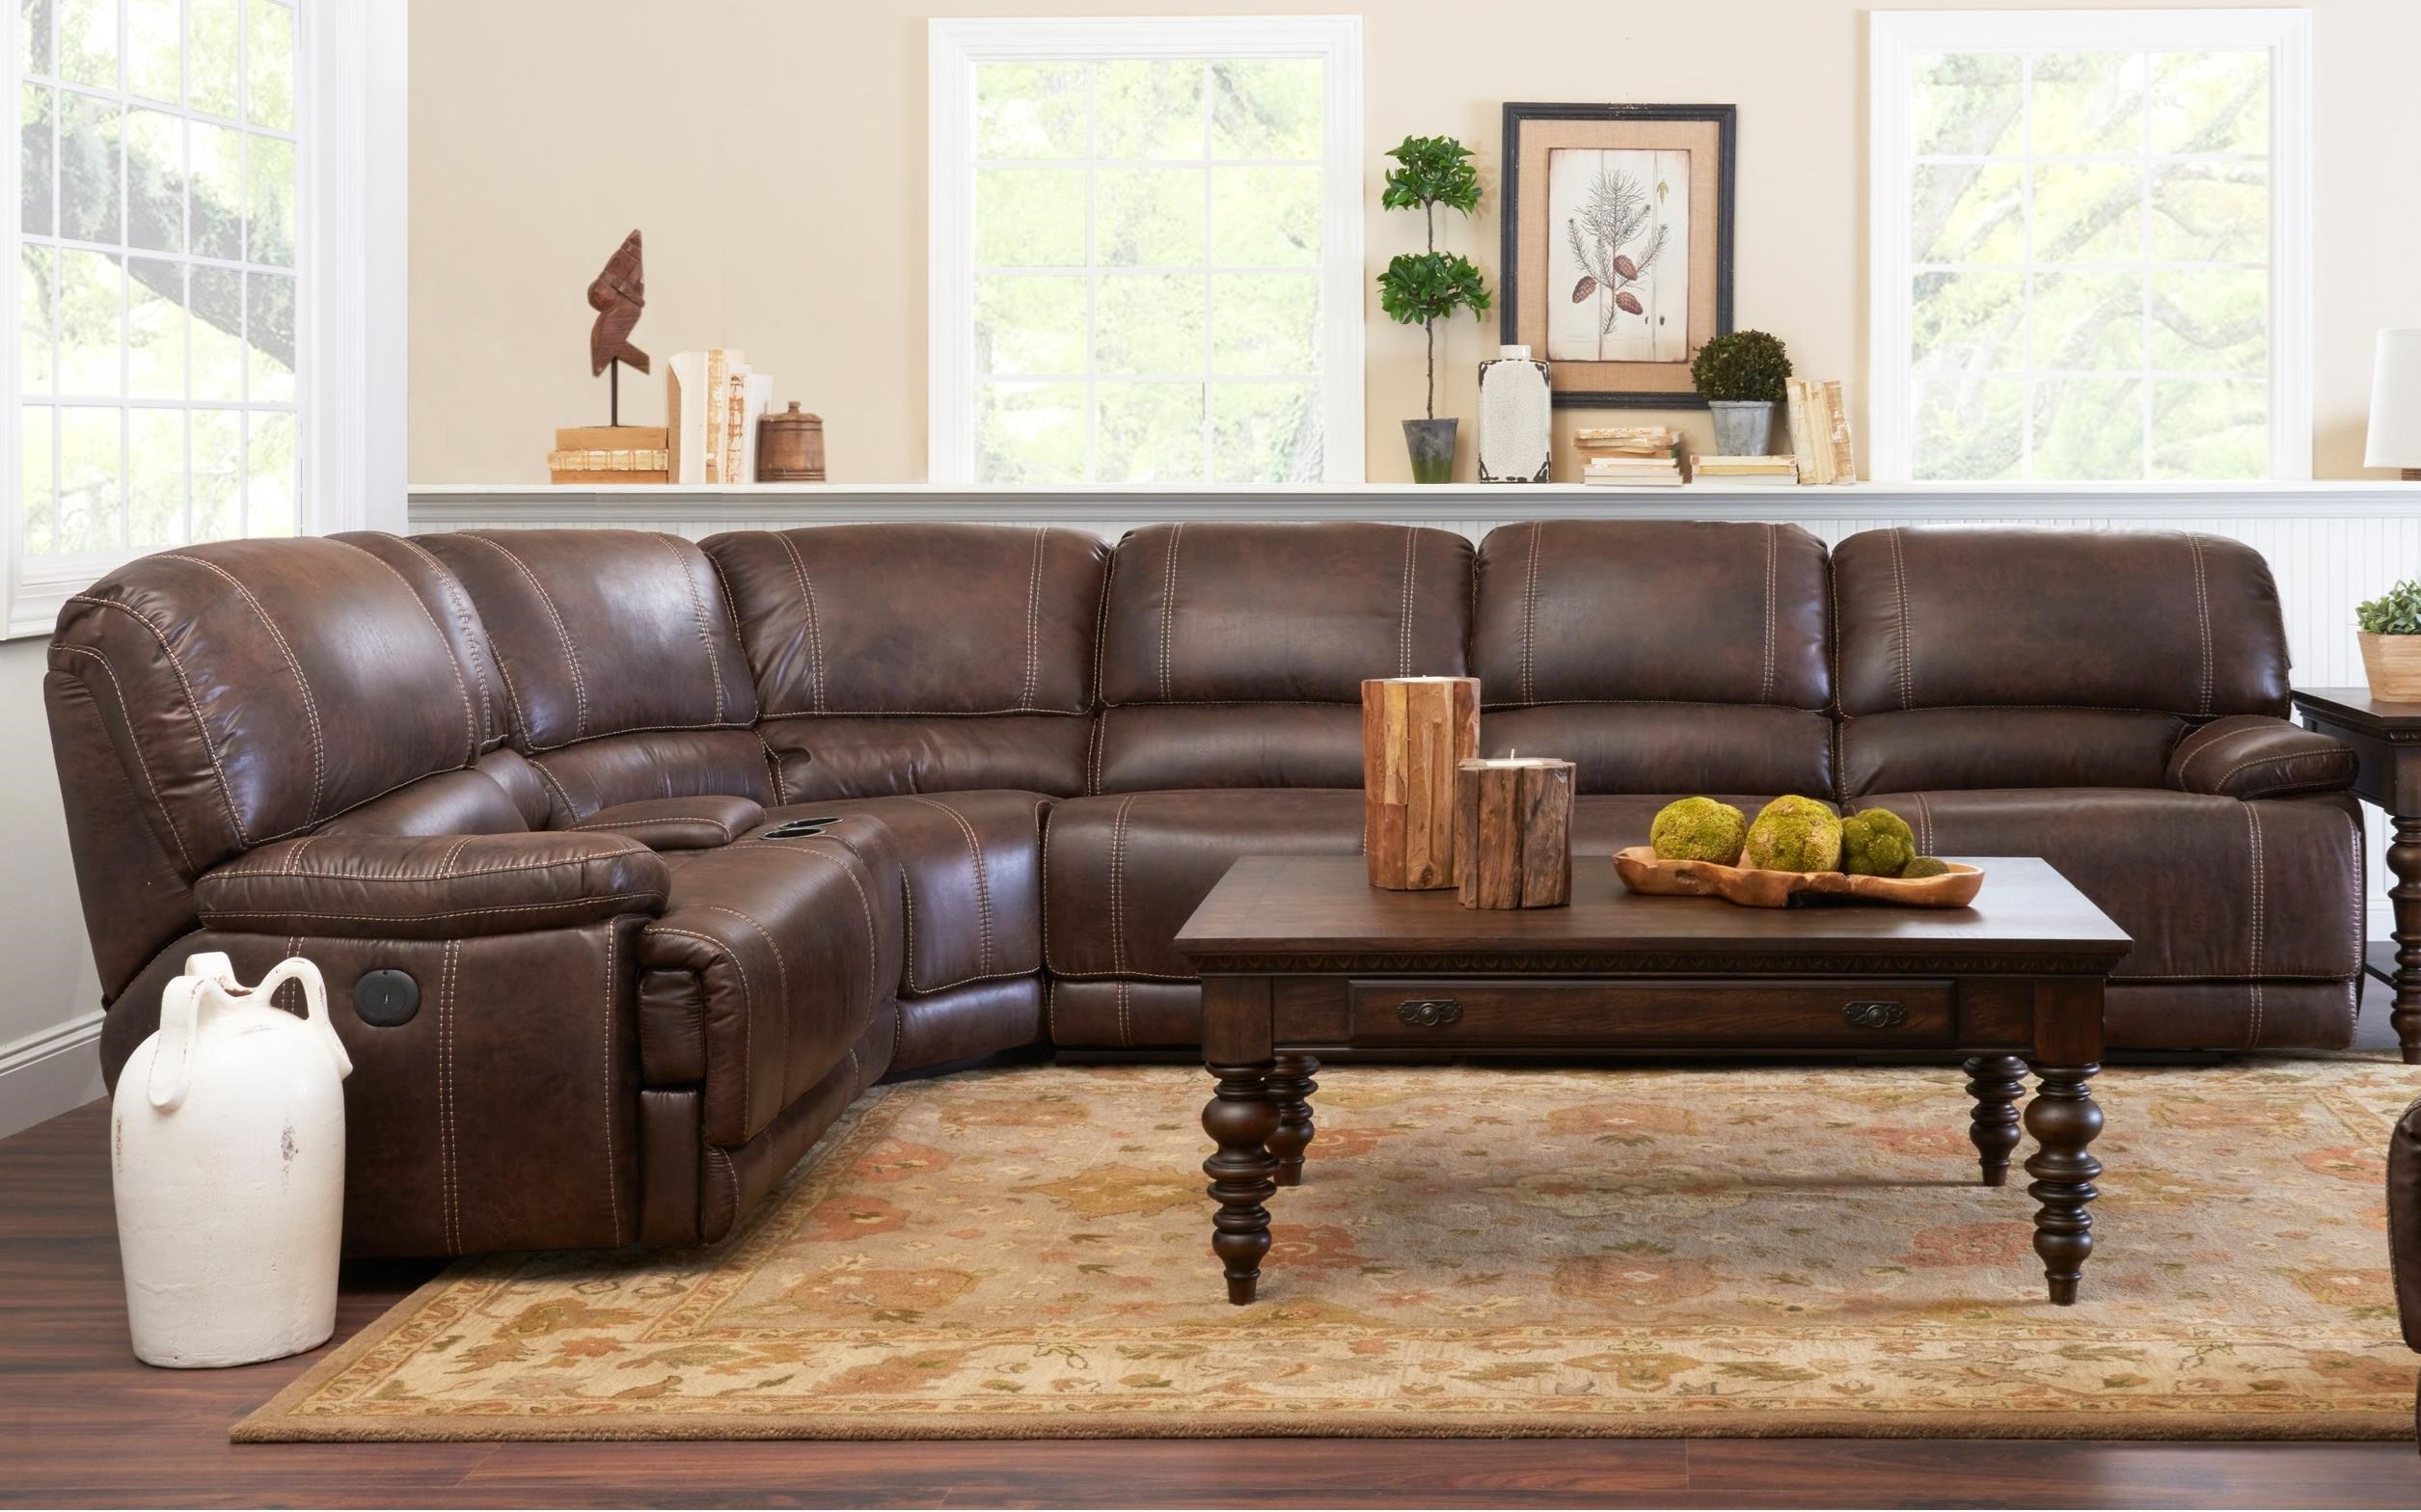 Foster 4 Seat Pwr Reclining Sectional Sofa by Klaussner International at Northeast Factory Direct